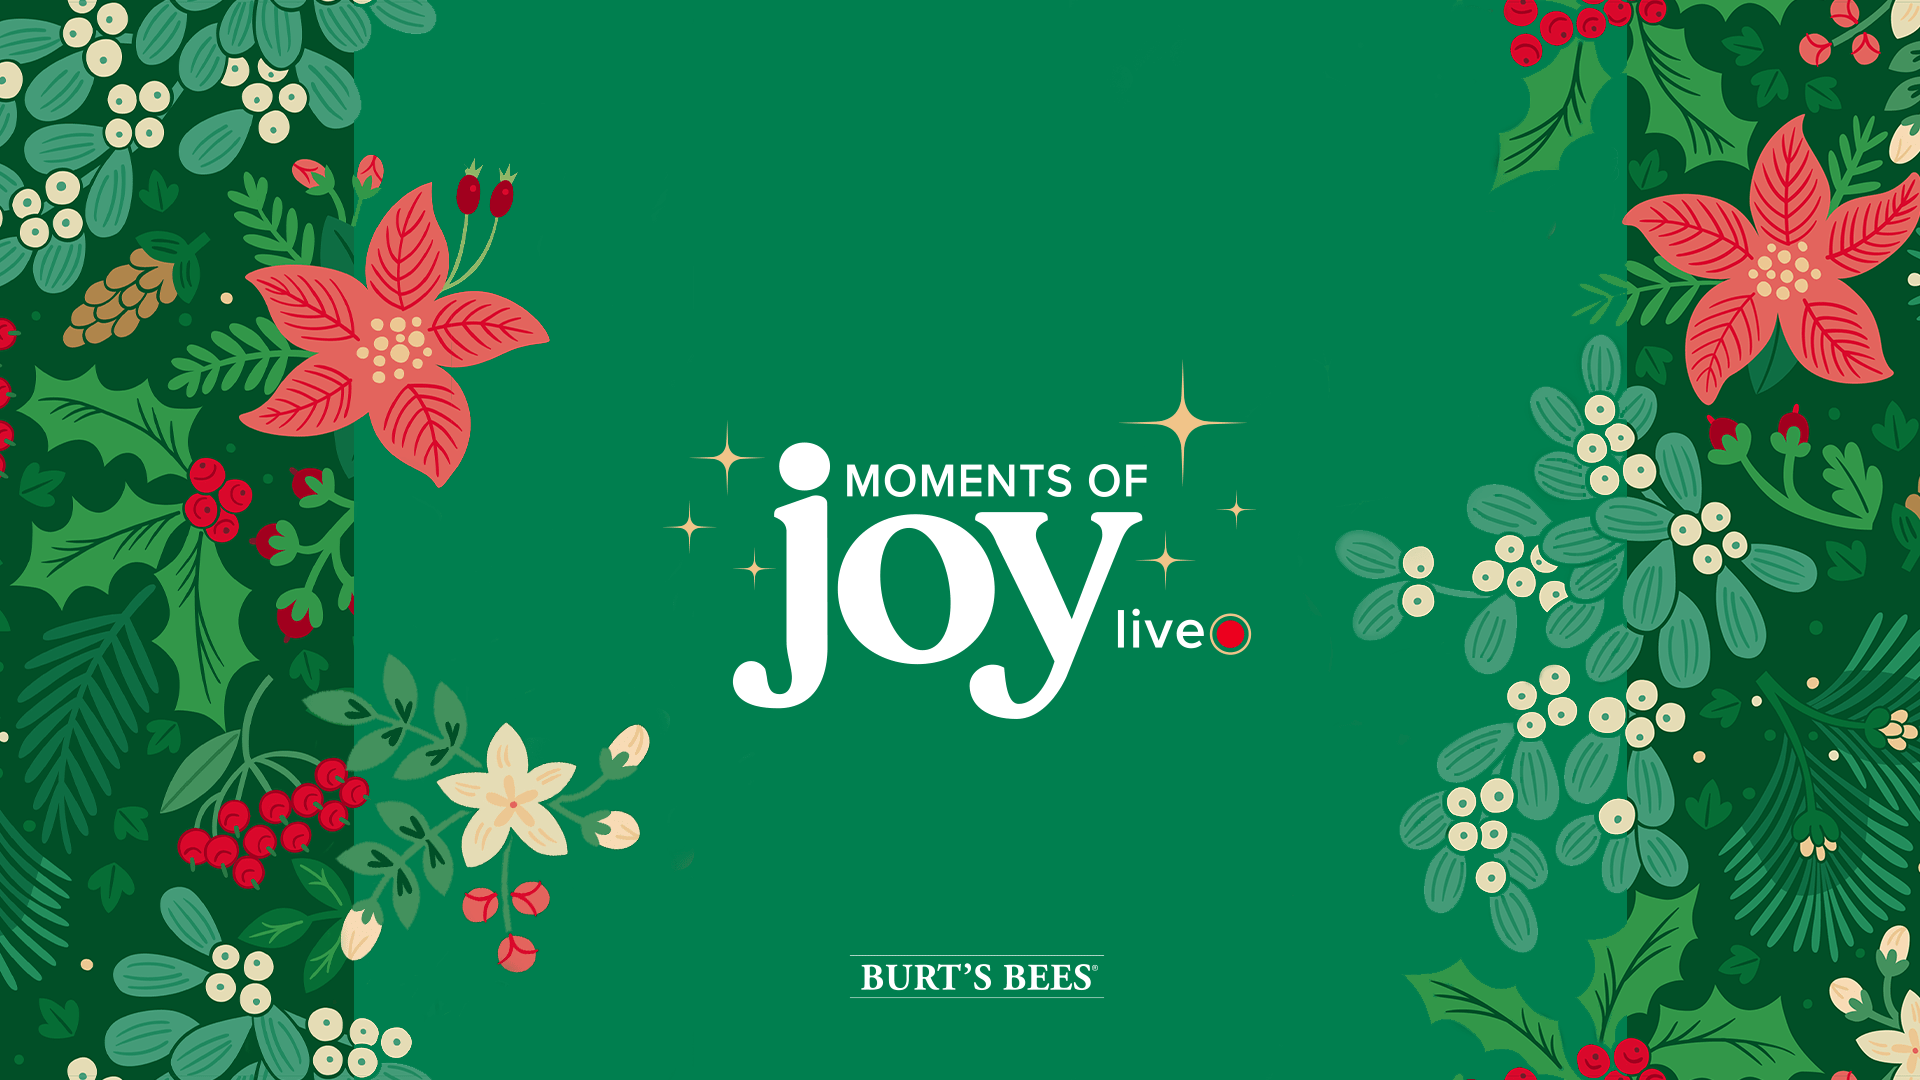 Enjoy Moments Of Joy With Burt's Bees!